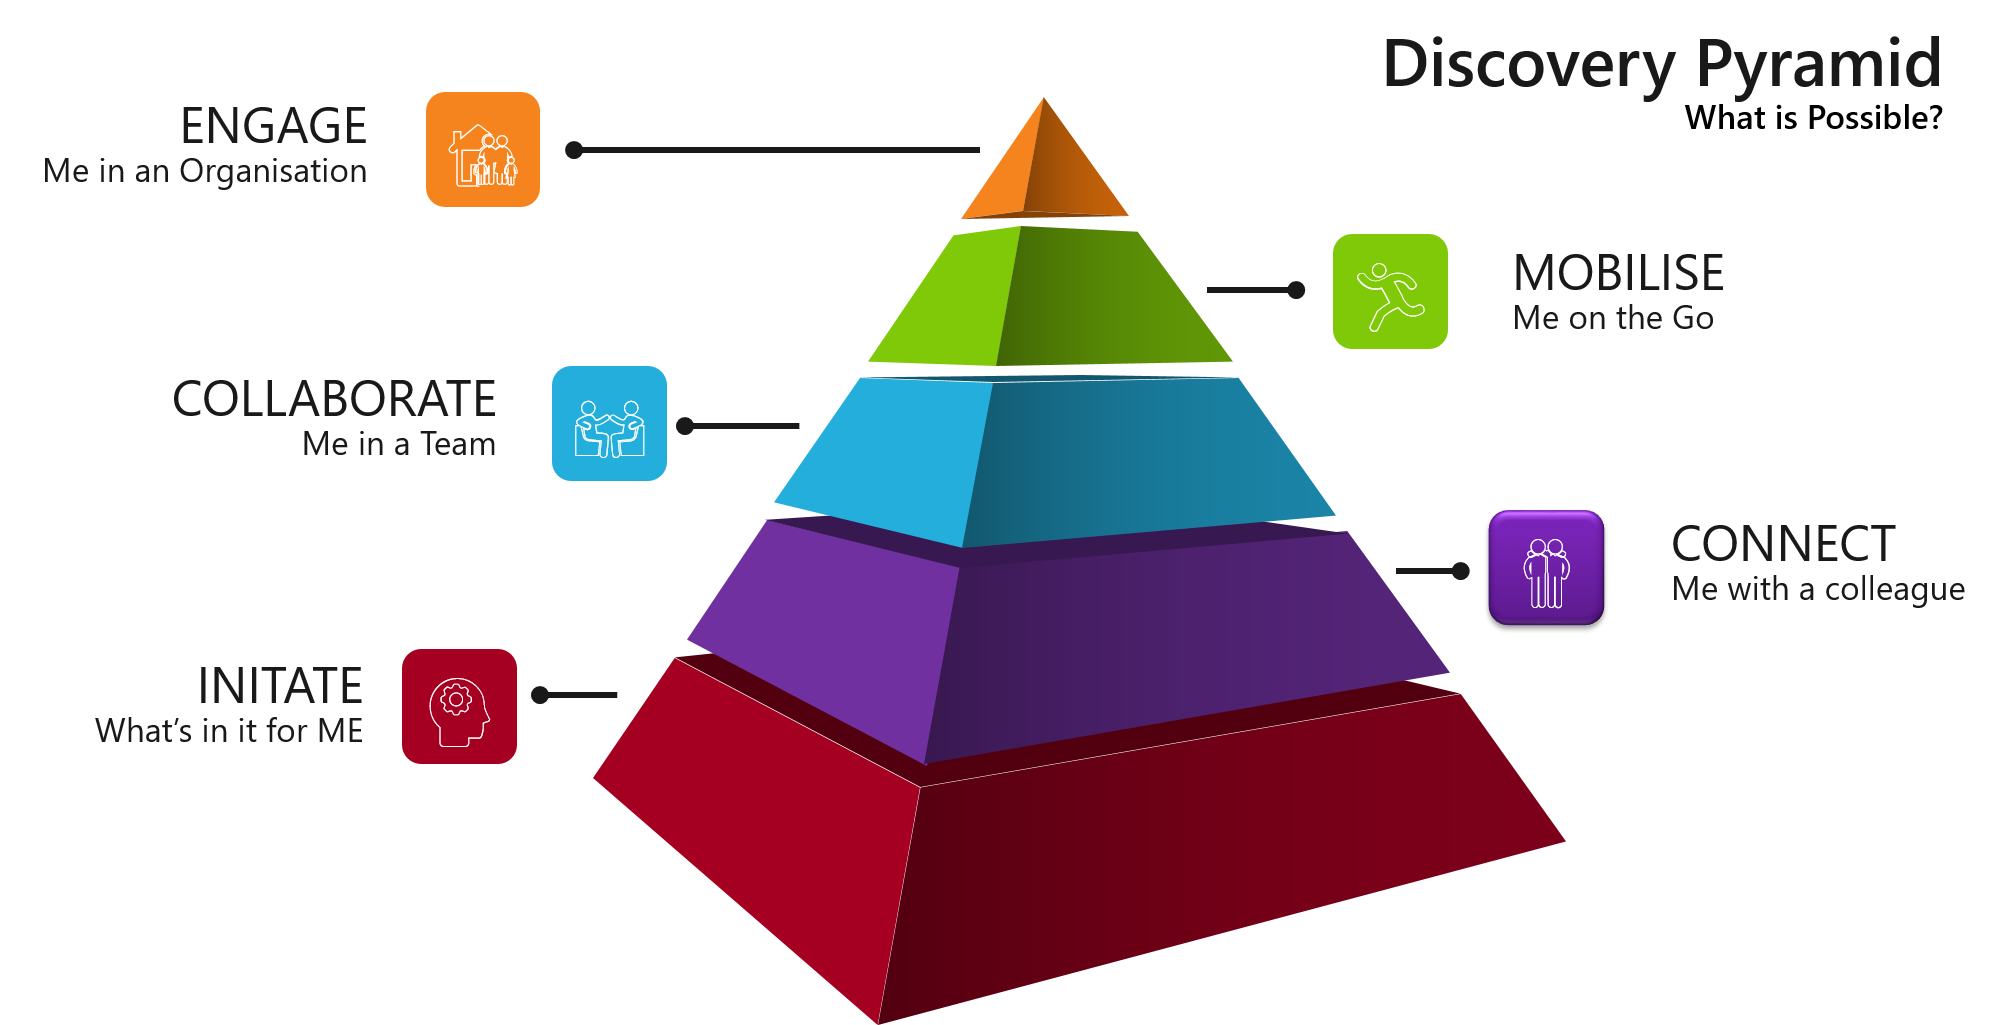 Discover Pyramid - Office 365 Tools